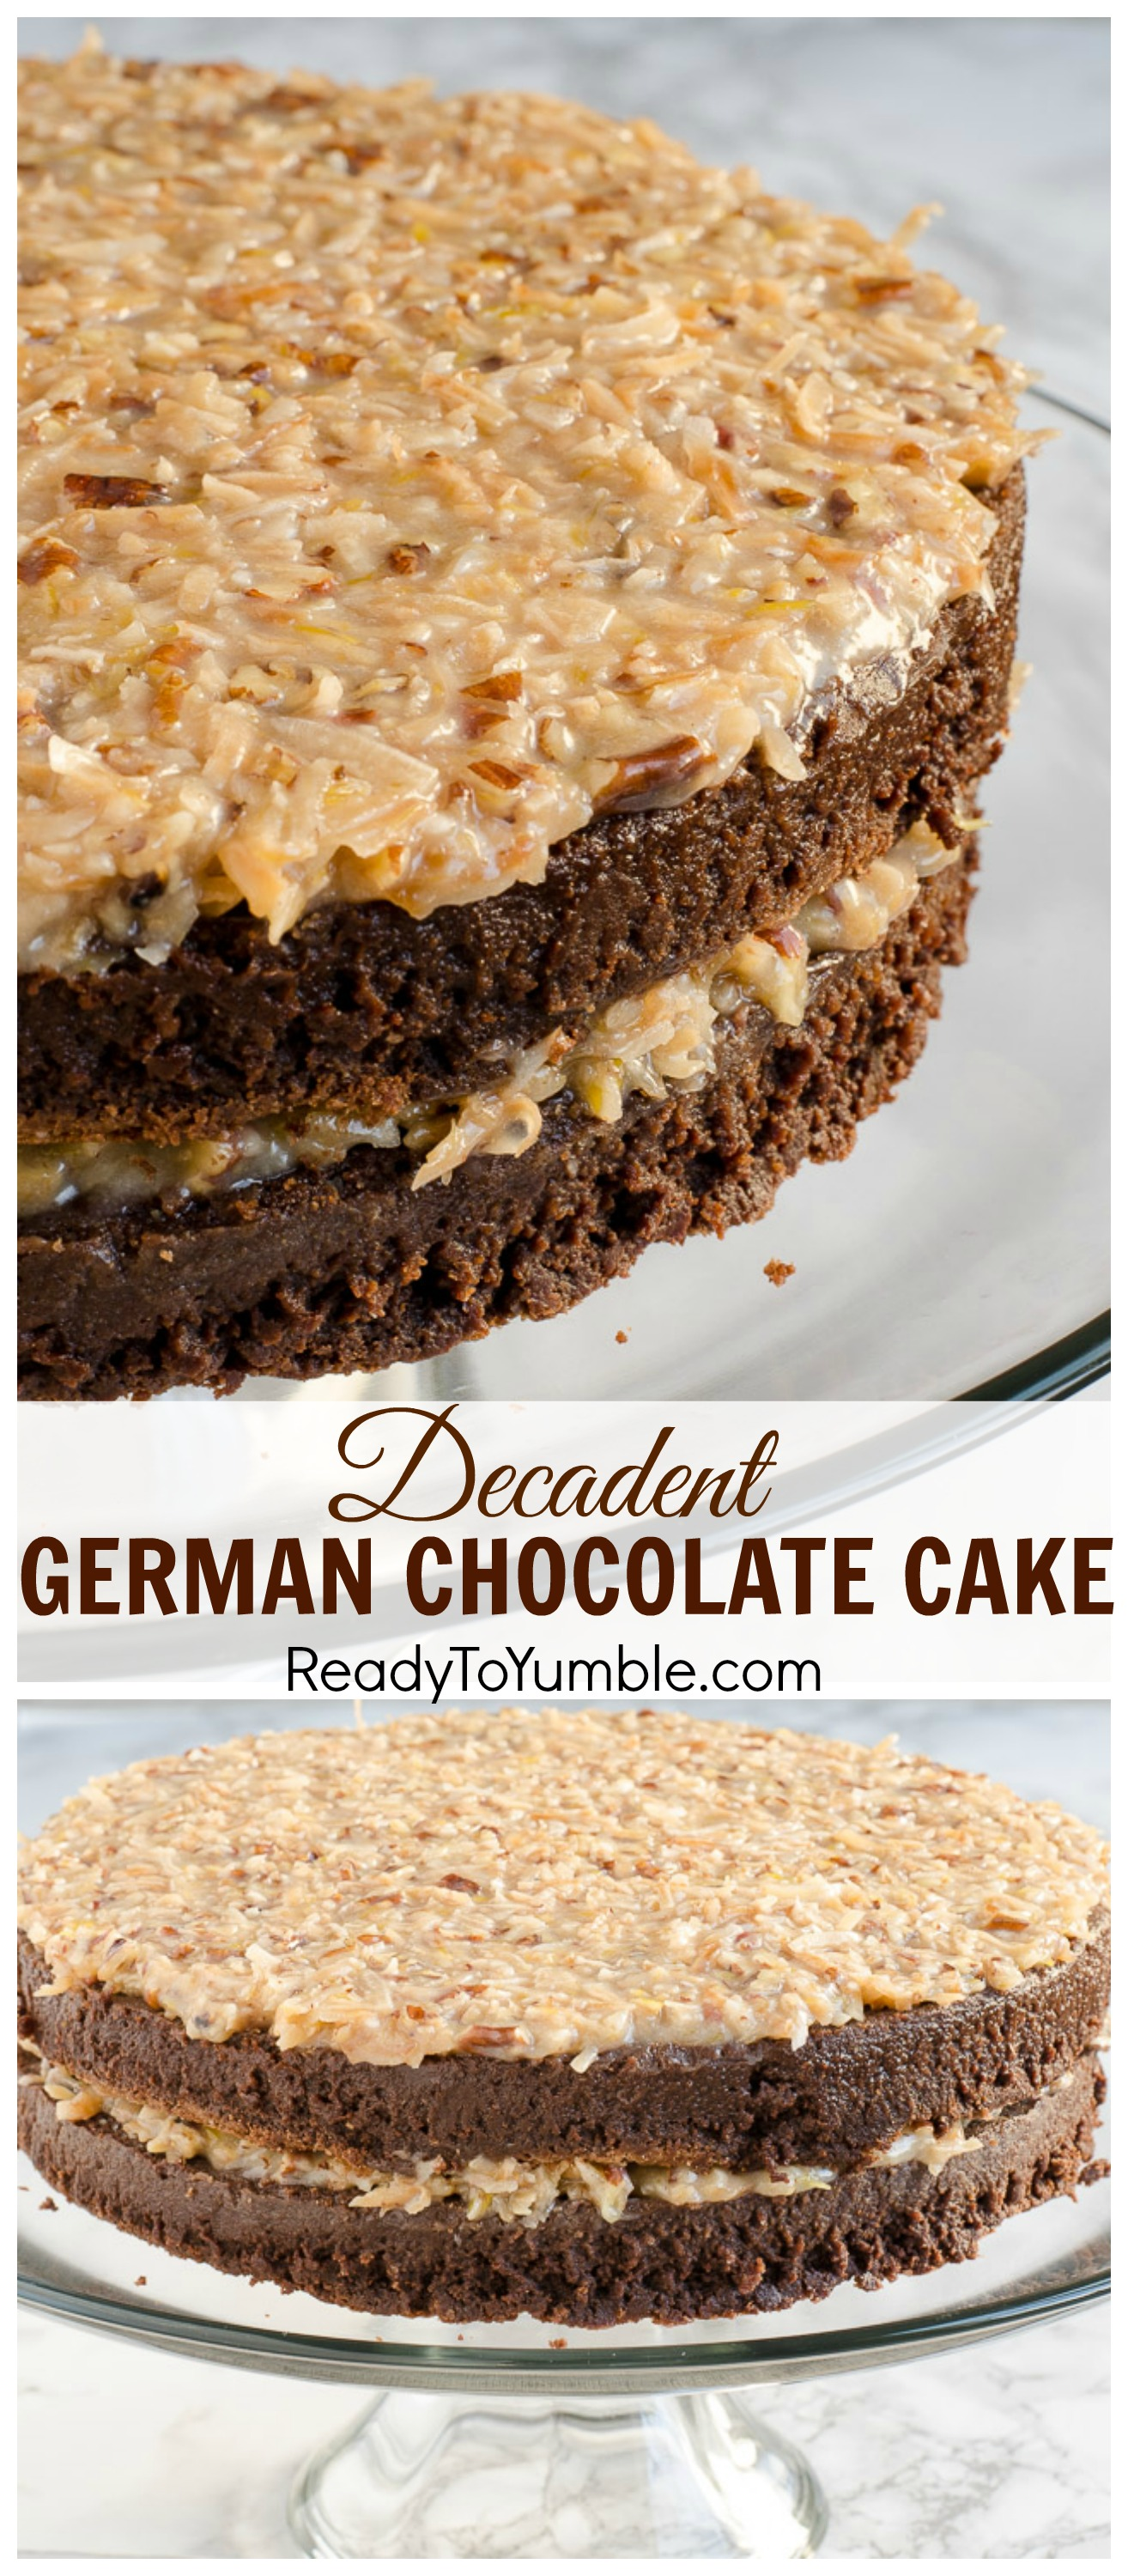 decadent chocolate cake decadent german chocolate cake ready to yumble 3329